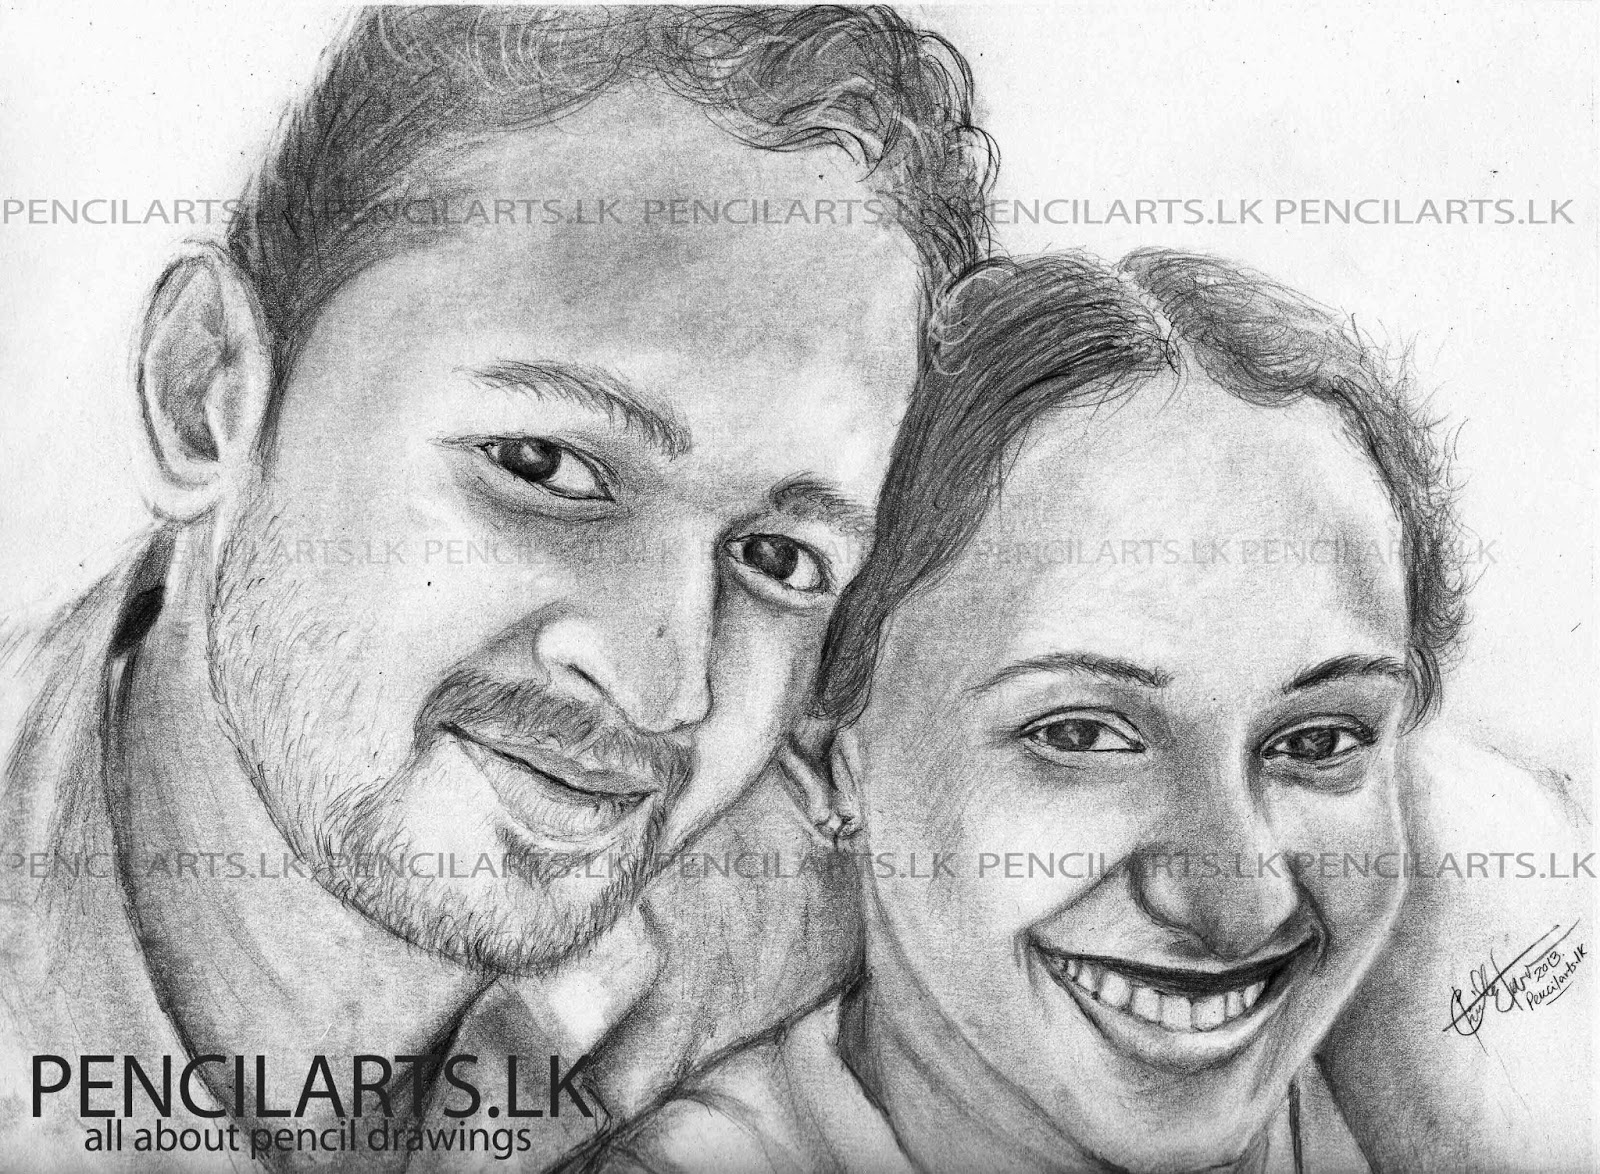 Latest orders pencilarts lk pencil art is a perfect gift for friends and family